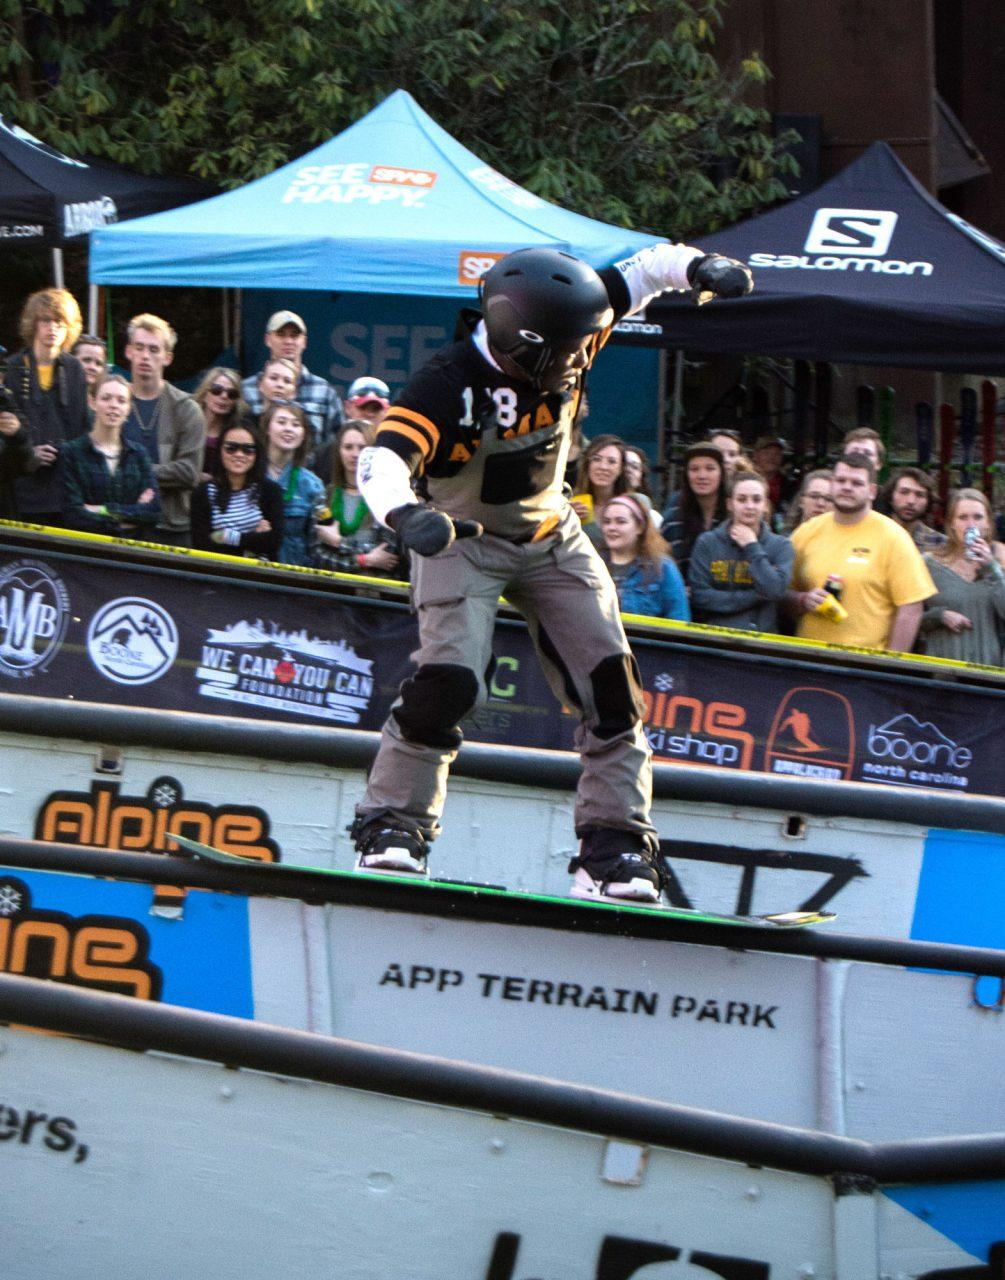 A snowboarder hits a 50-50 grind on the middle rail at the Rail Jam slope.